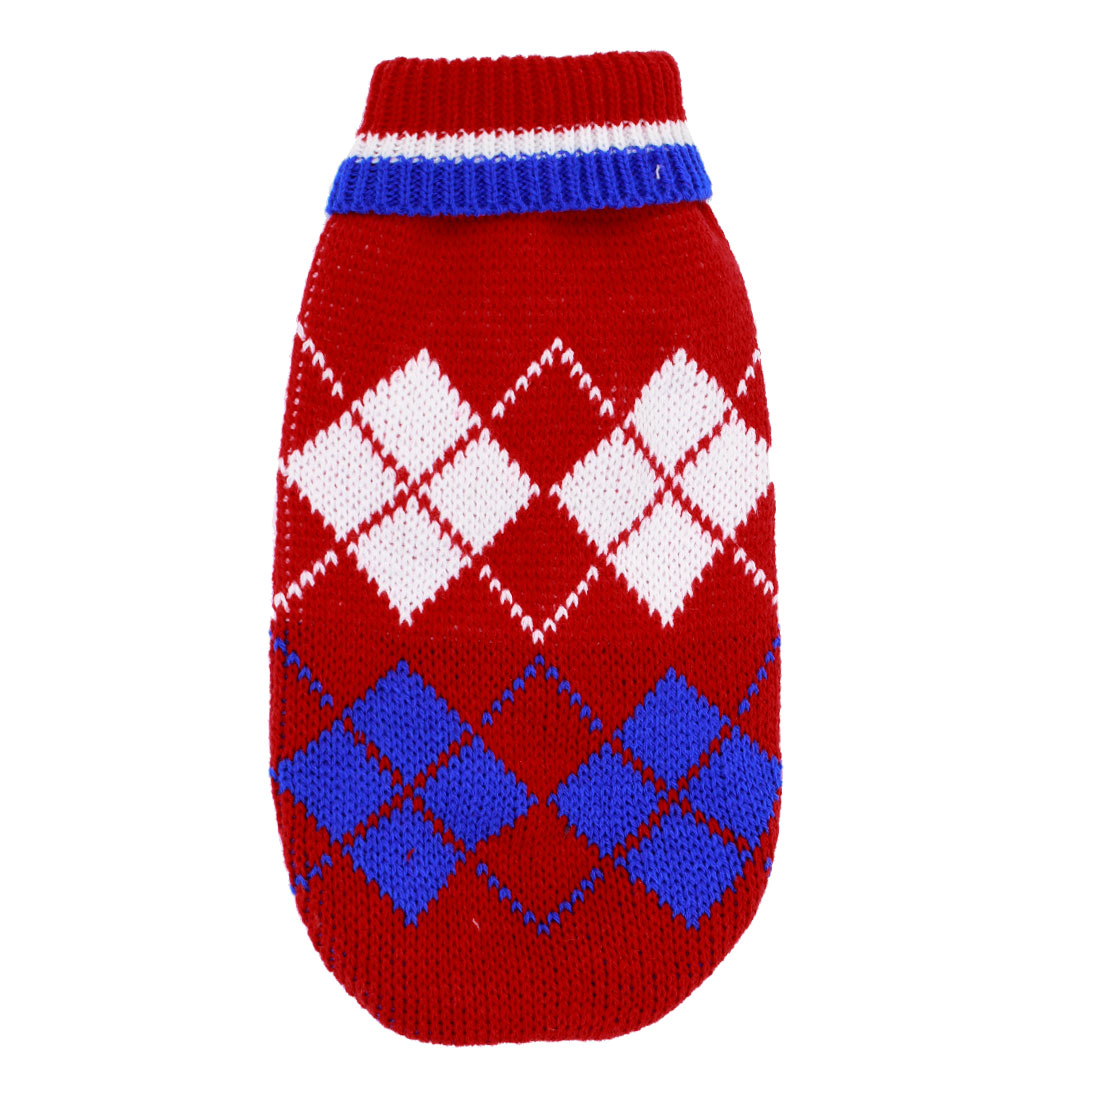 Pet Dog Puppy Ribbed Cuff Knitwear Turtleneck Apparel Coat Sweater Red White Blue Size XS